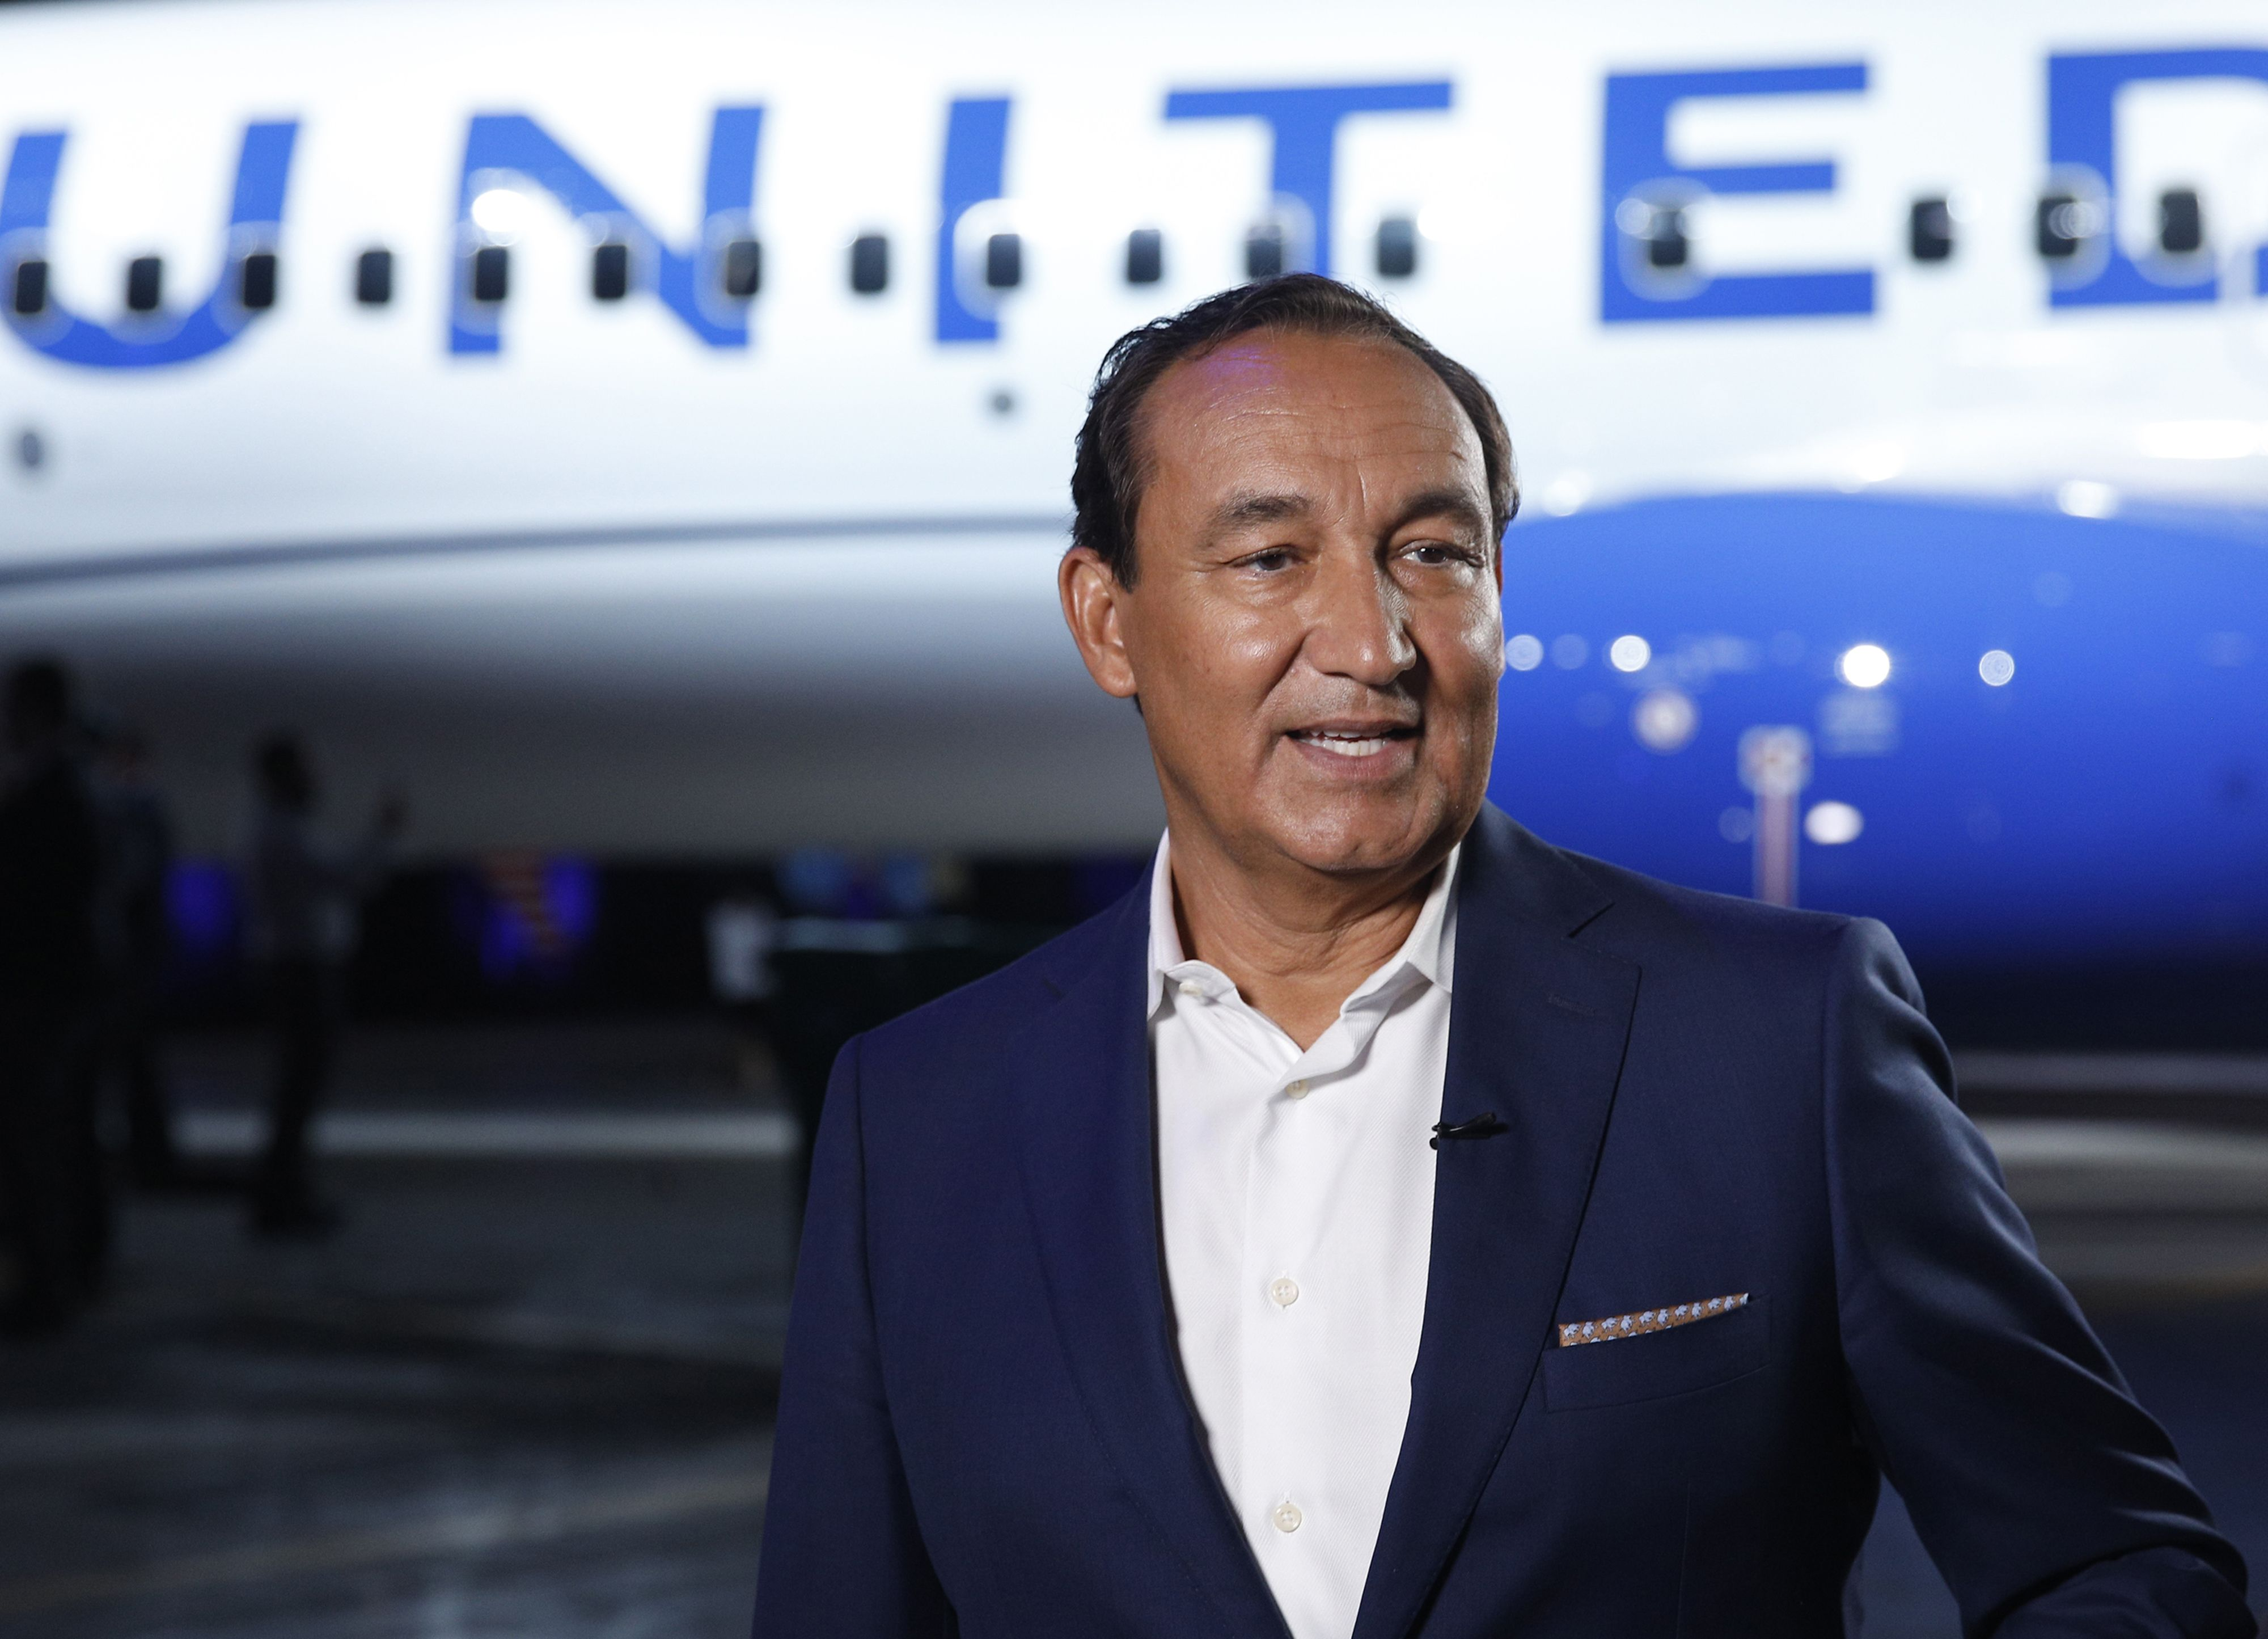 United Airlines CEO Oscar Munoz on what happens when 737 Max returns